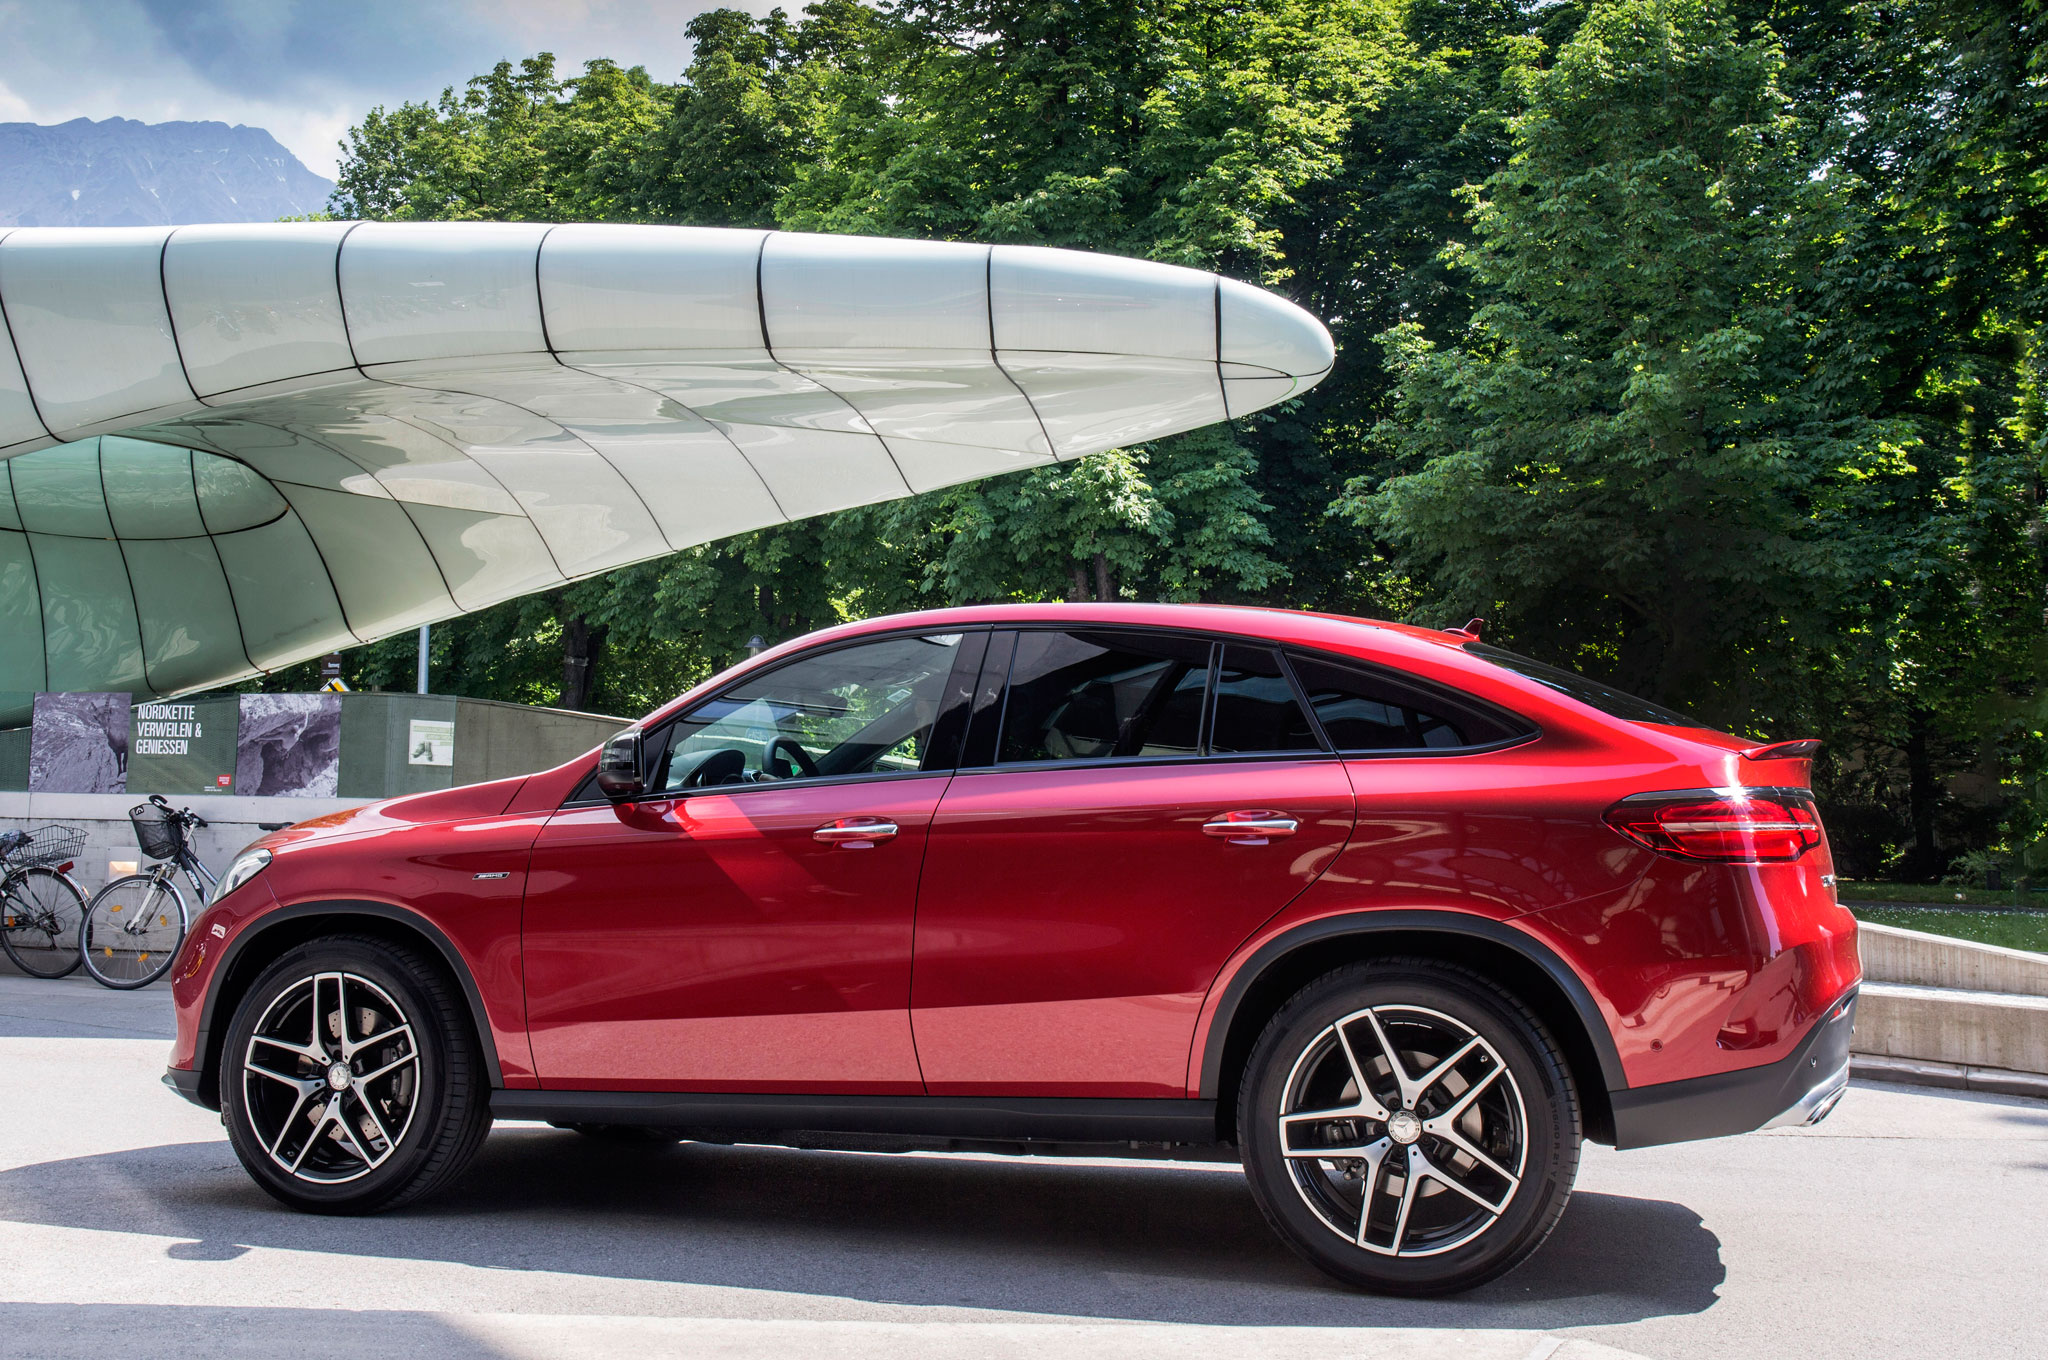 http://st.automobilemag.com/uploads/sites/11/2015/10/2016-Mercedes-Benz-GLE450-AMG-4Matic-Coupe-side-profile-02.jpg